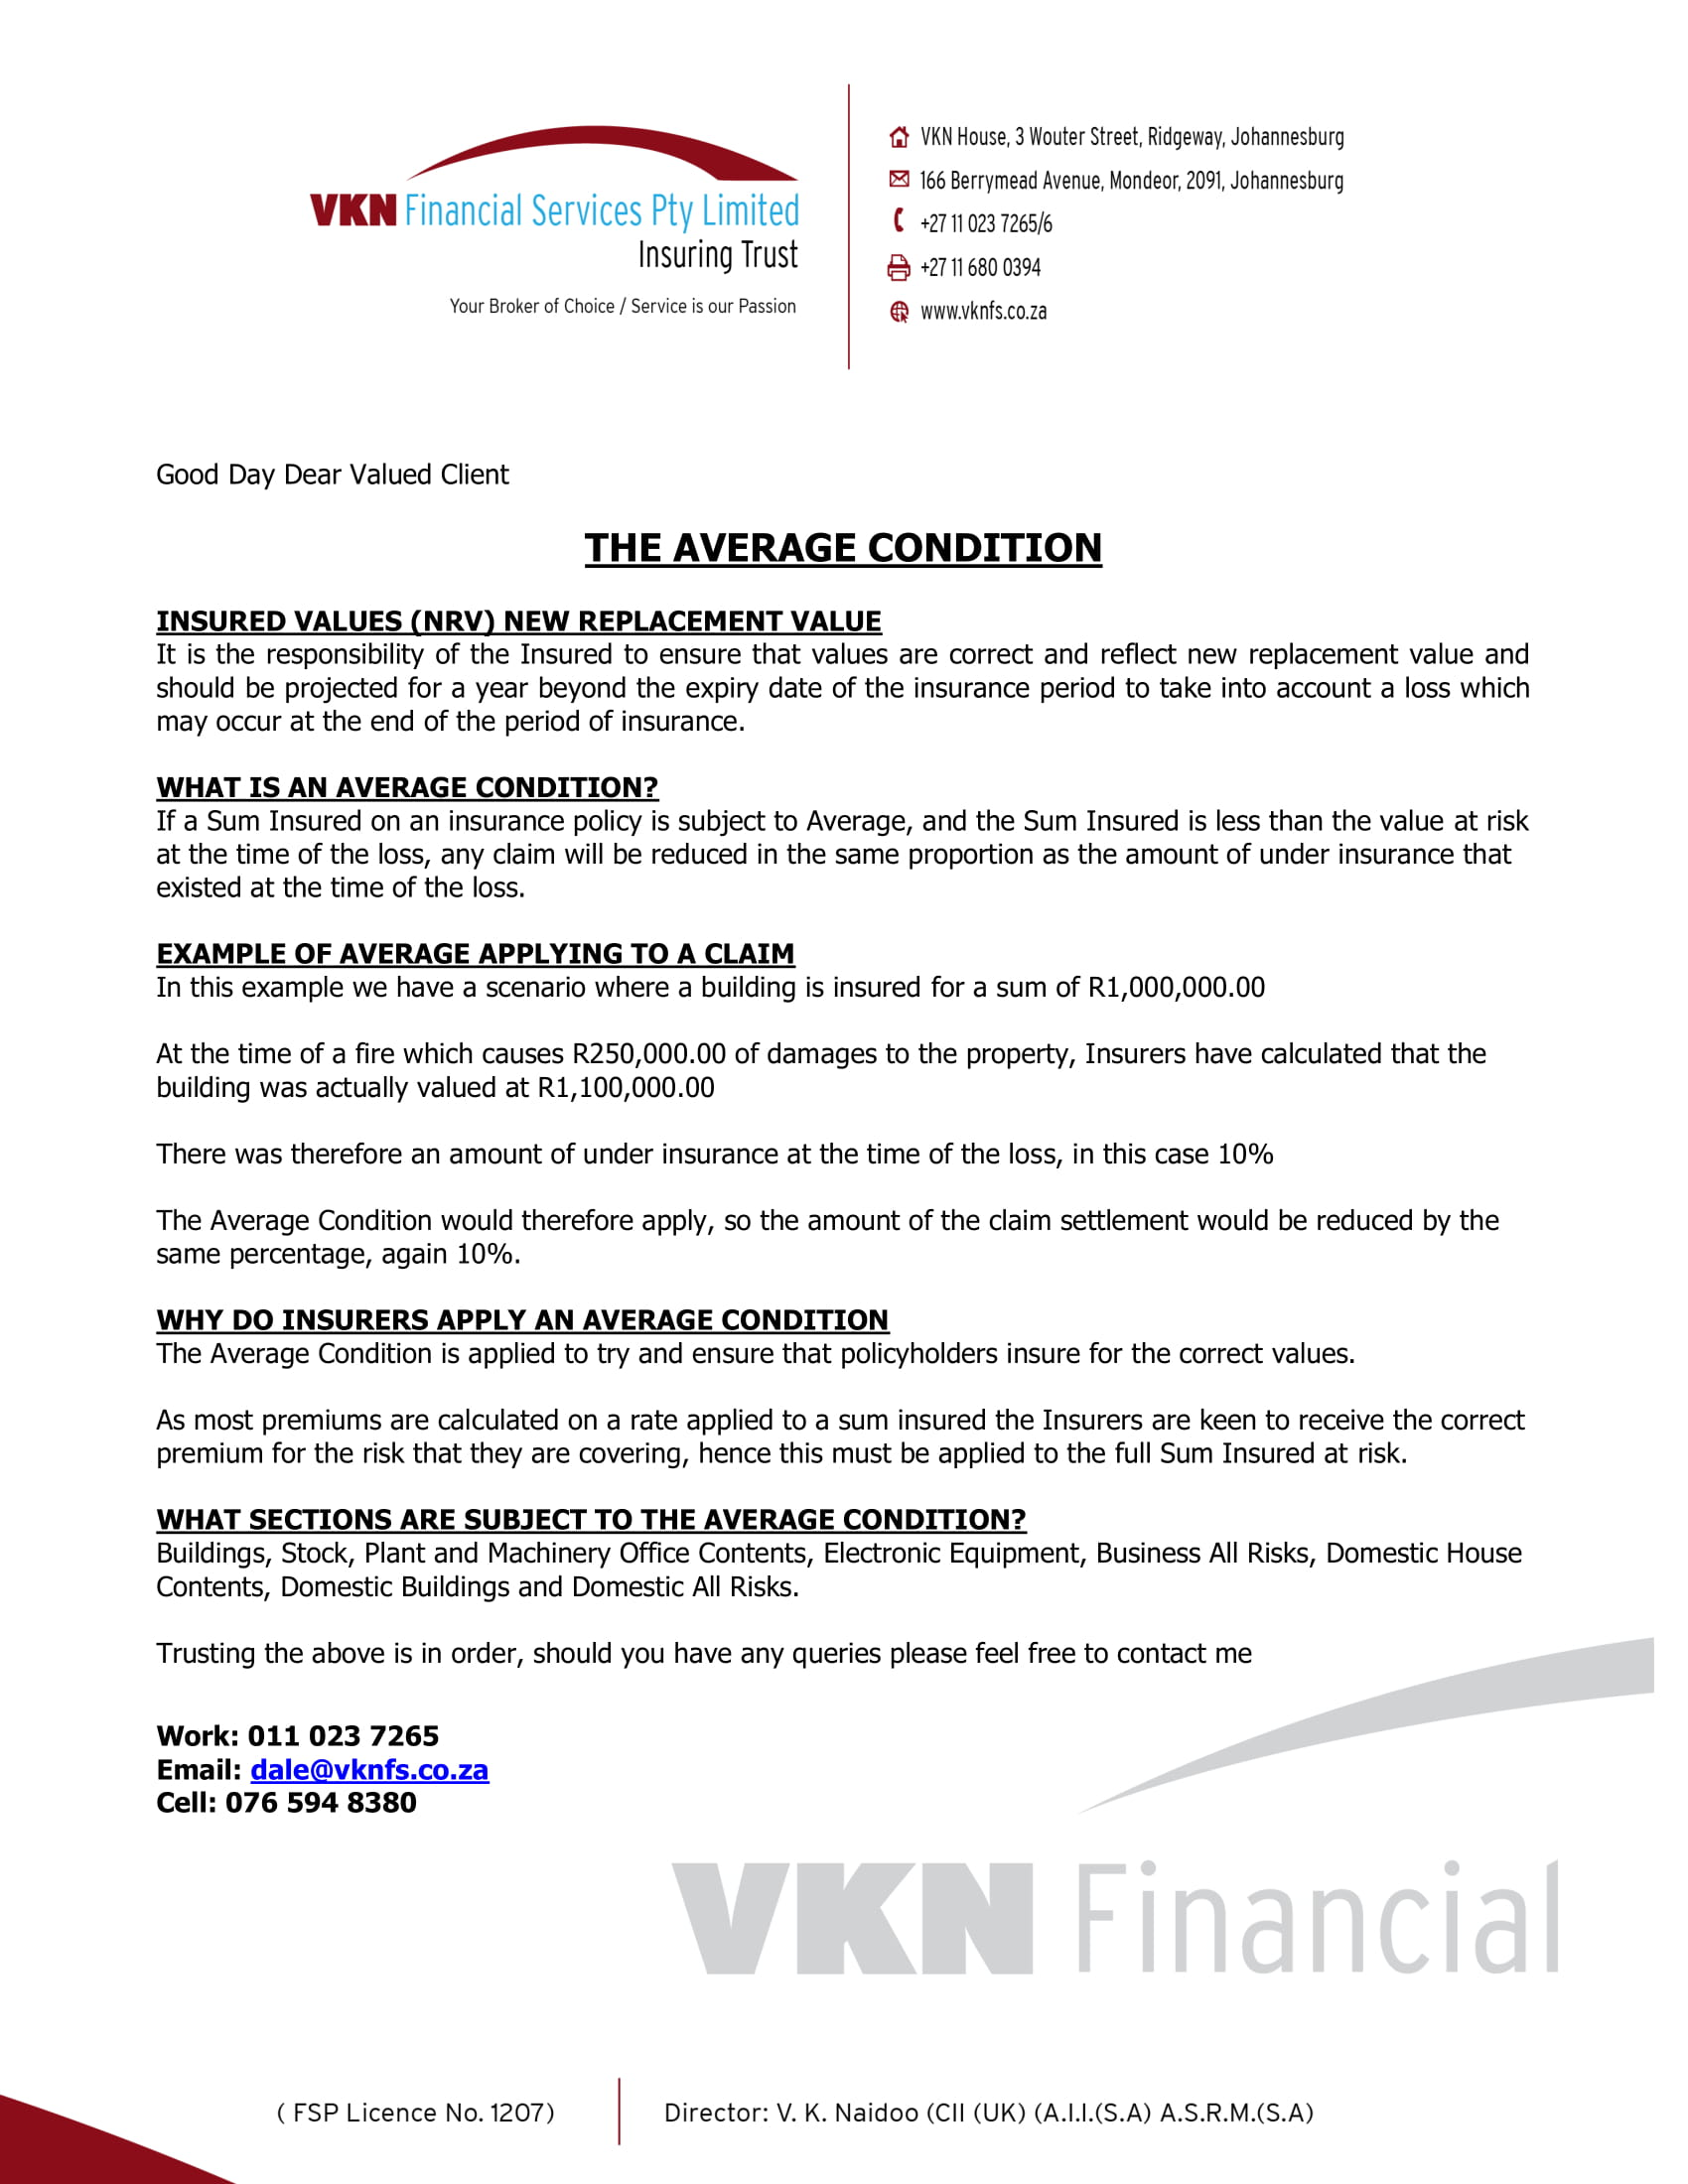 DONT GET CAUGHT BY AVERAGE – VKN Financial Services